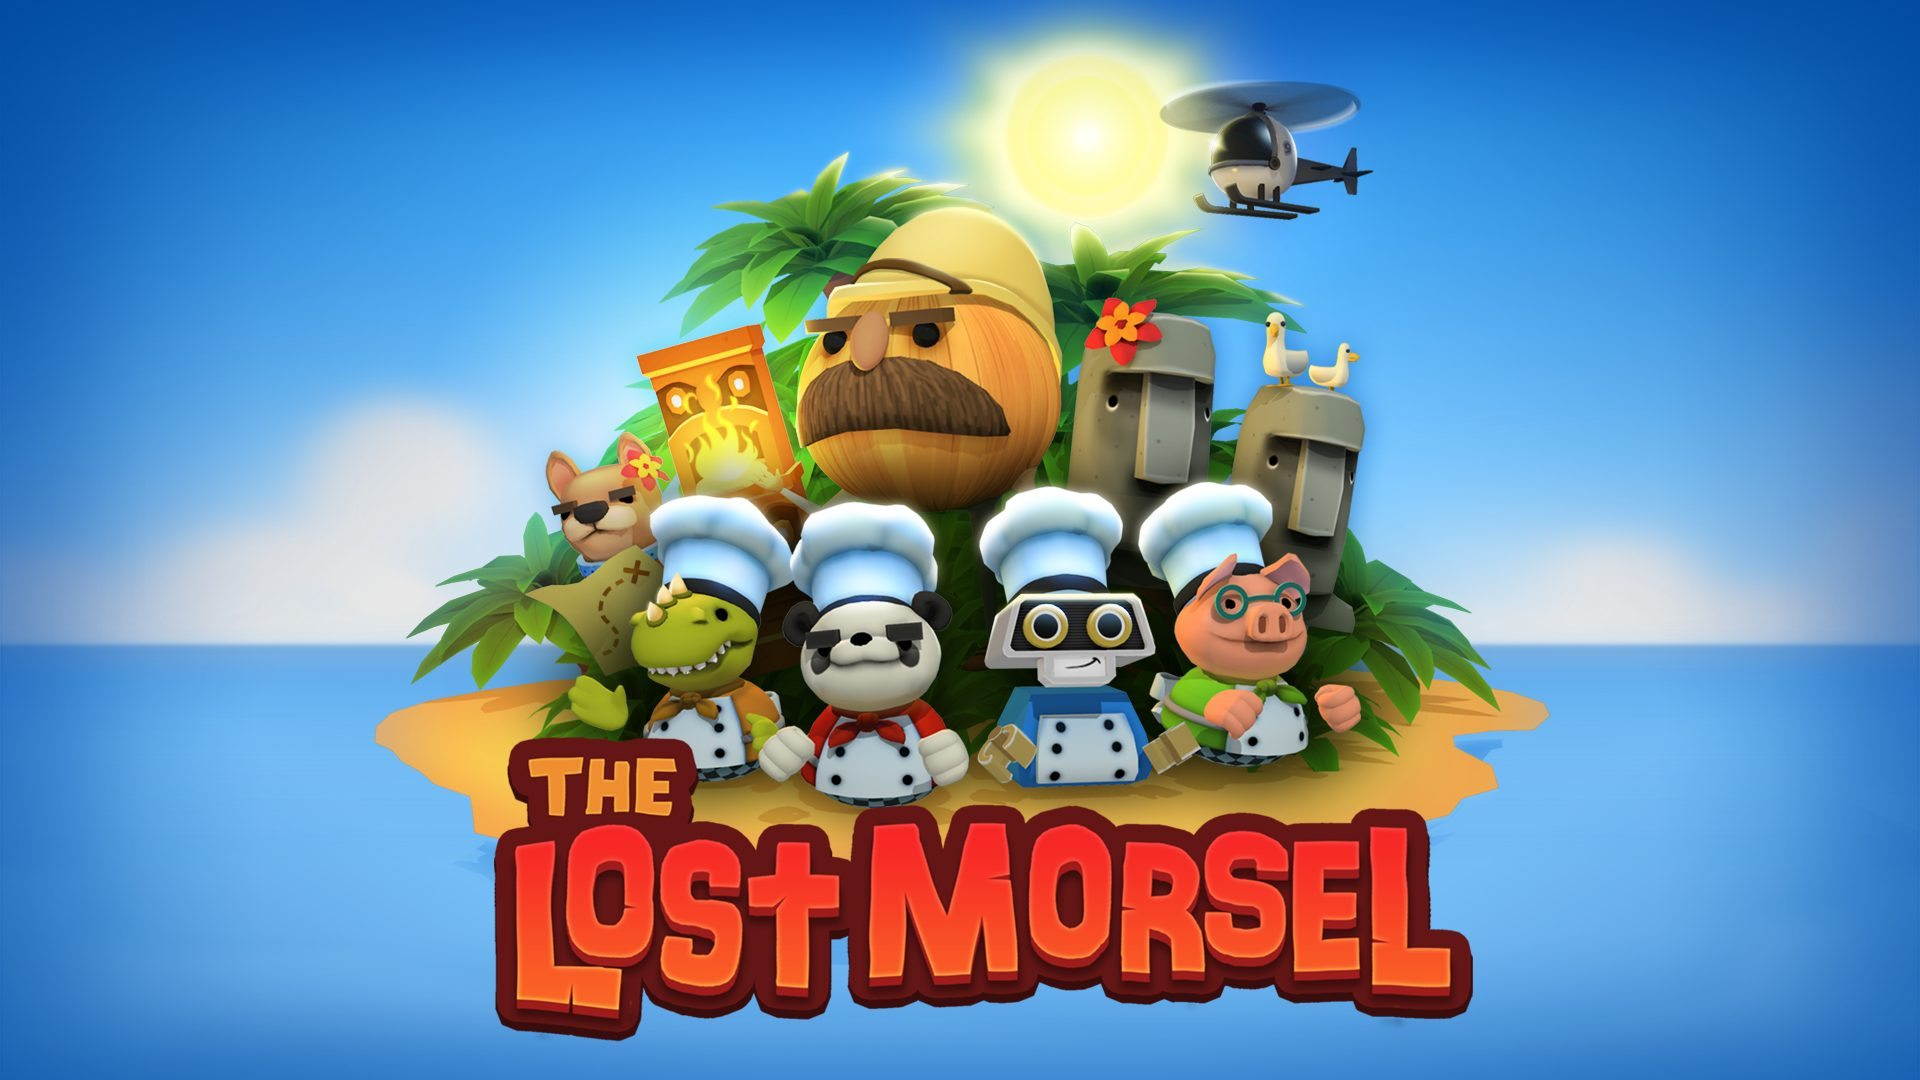 OVERCOOKED: GOURMET EDITION Heading to Retail Nov. 15, Includes The Last Morsel DLC